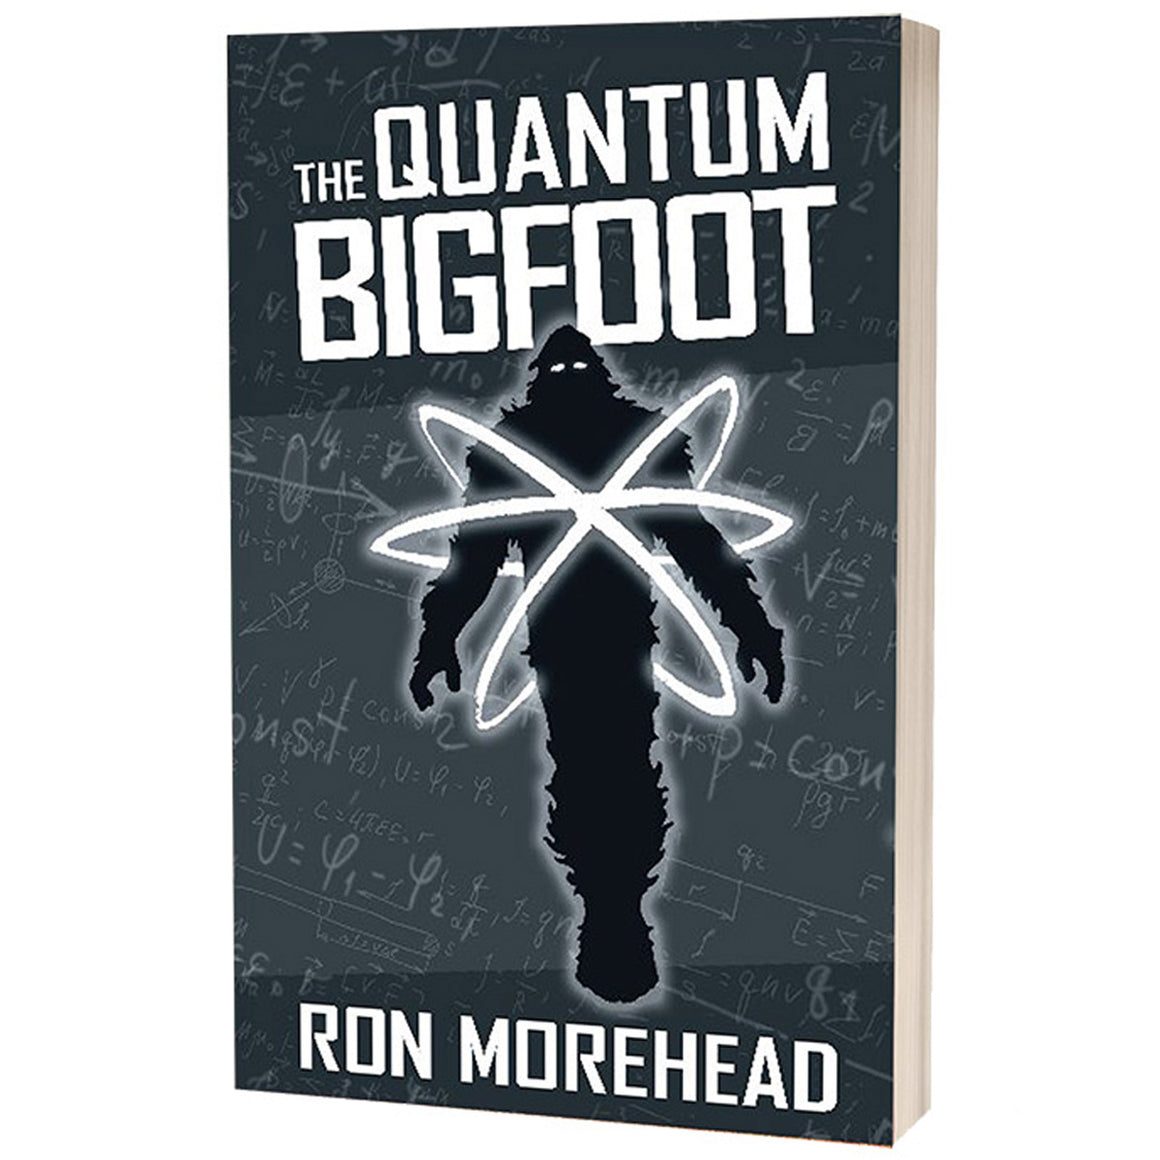 NEW! The Quantum Bigfoot